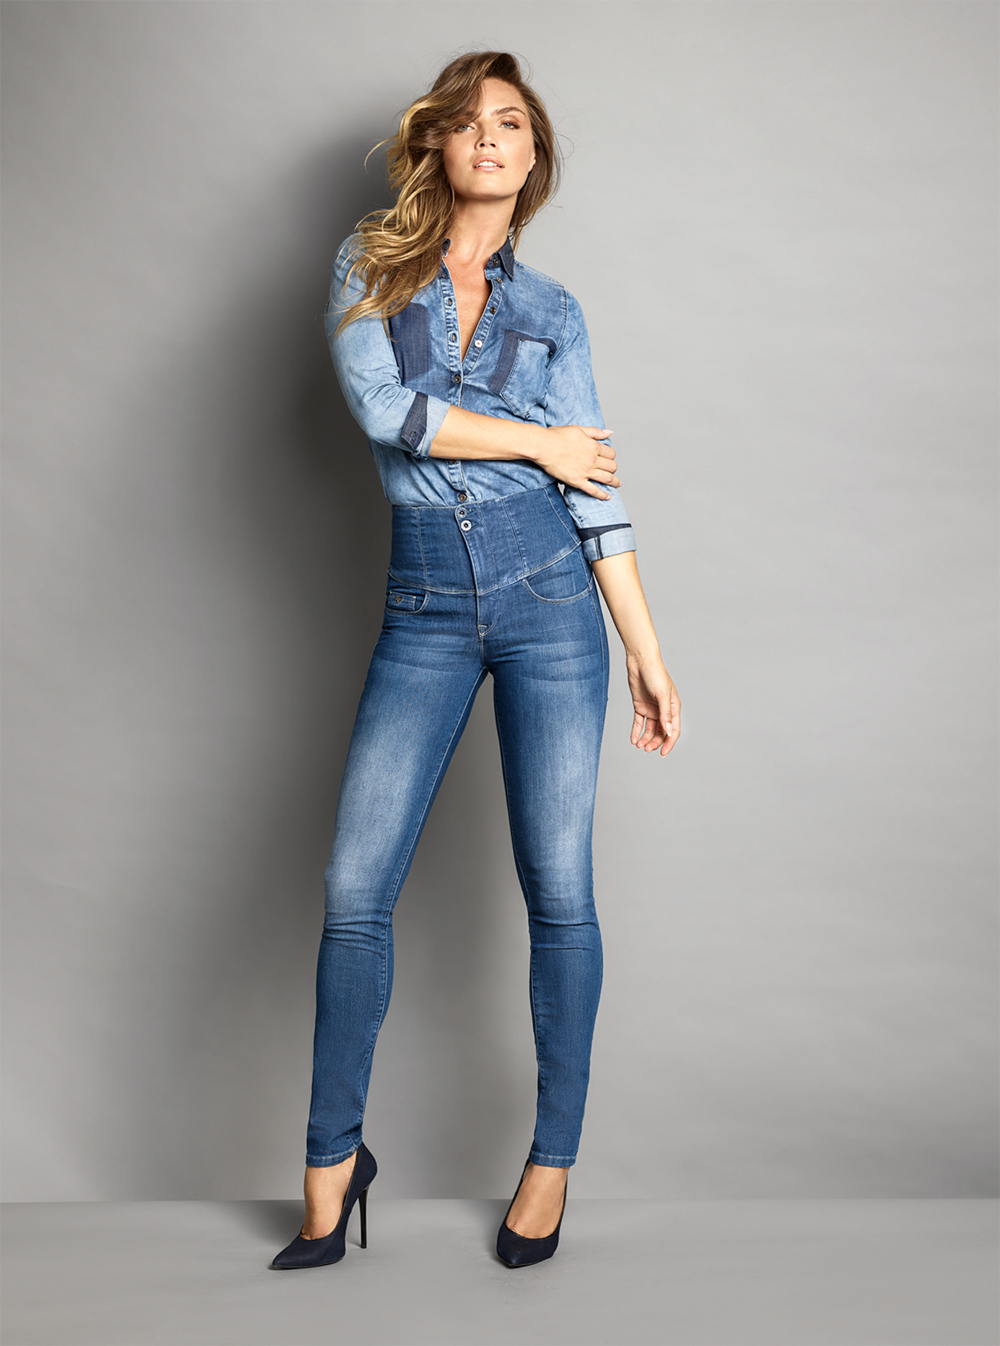 Push-In jeans by Salsa Jeans.